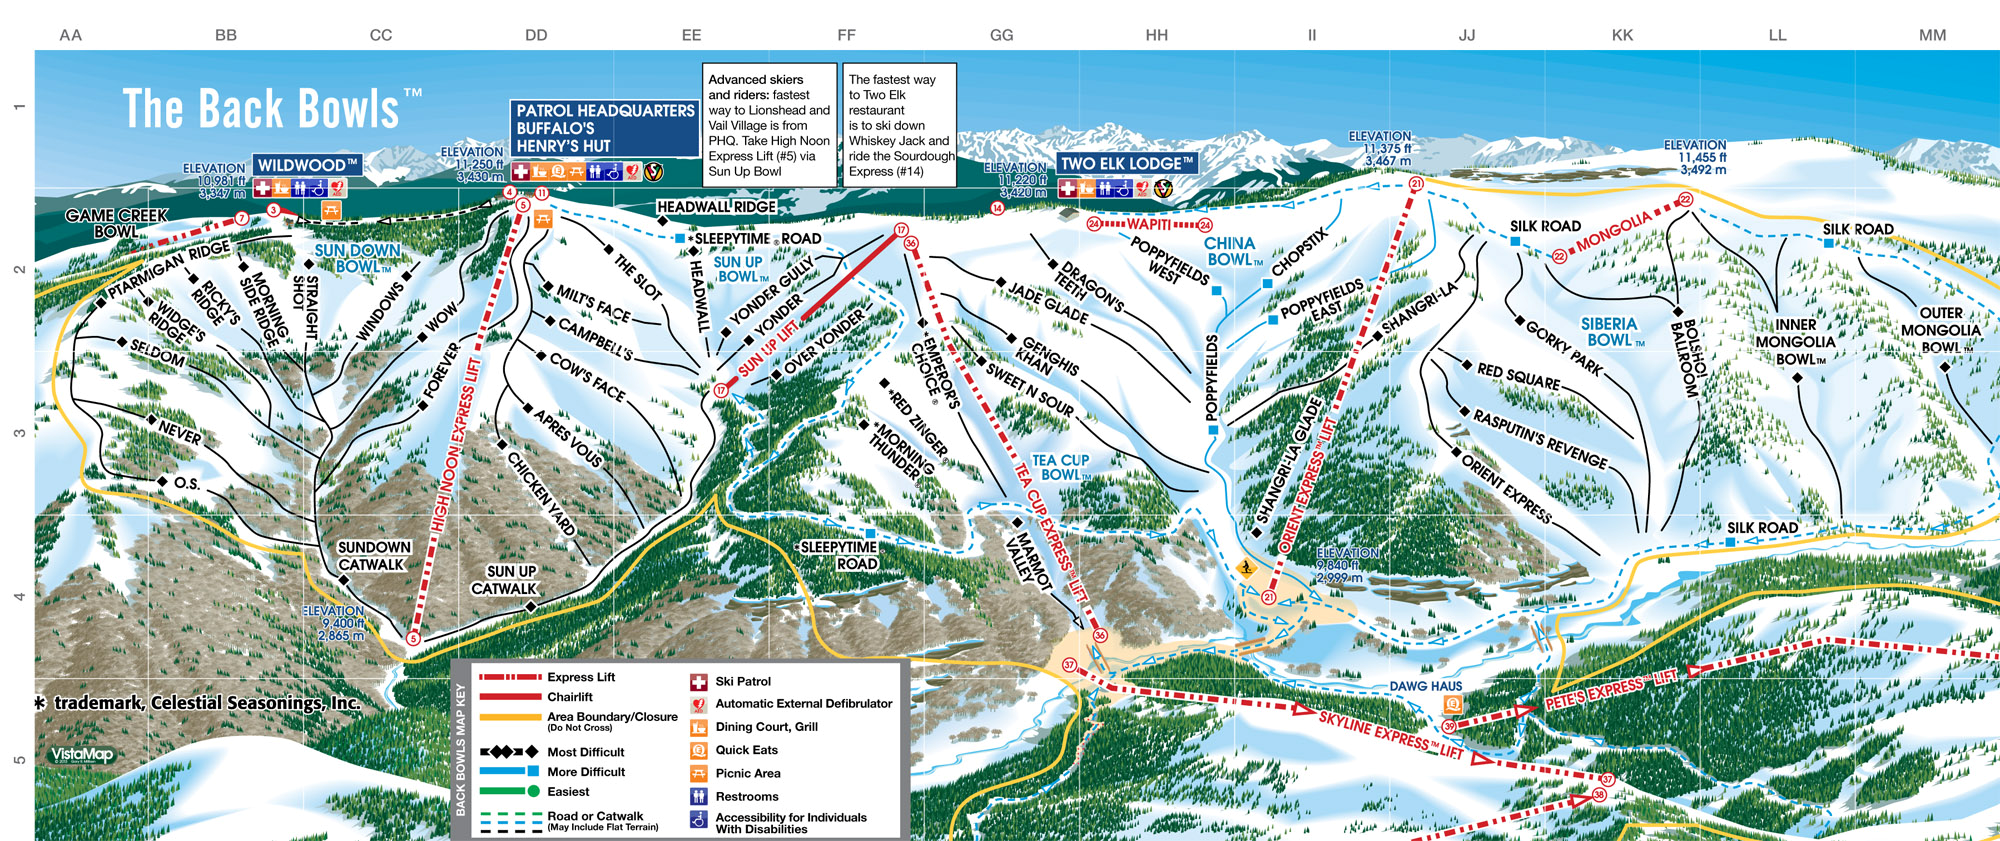 Vail Mountain Map Vail   SkiMap.org